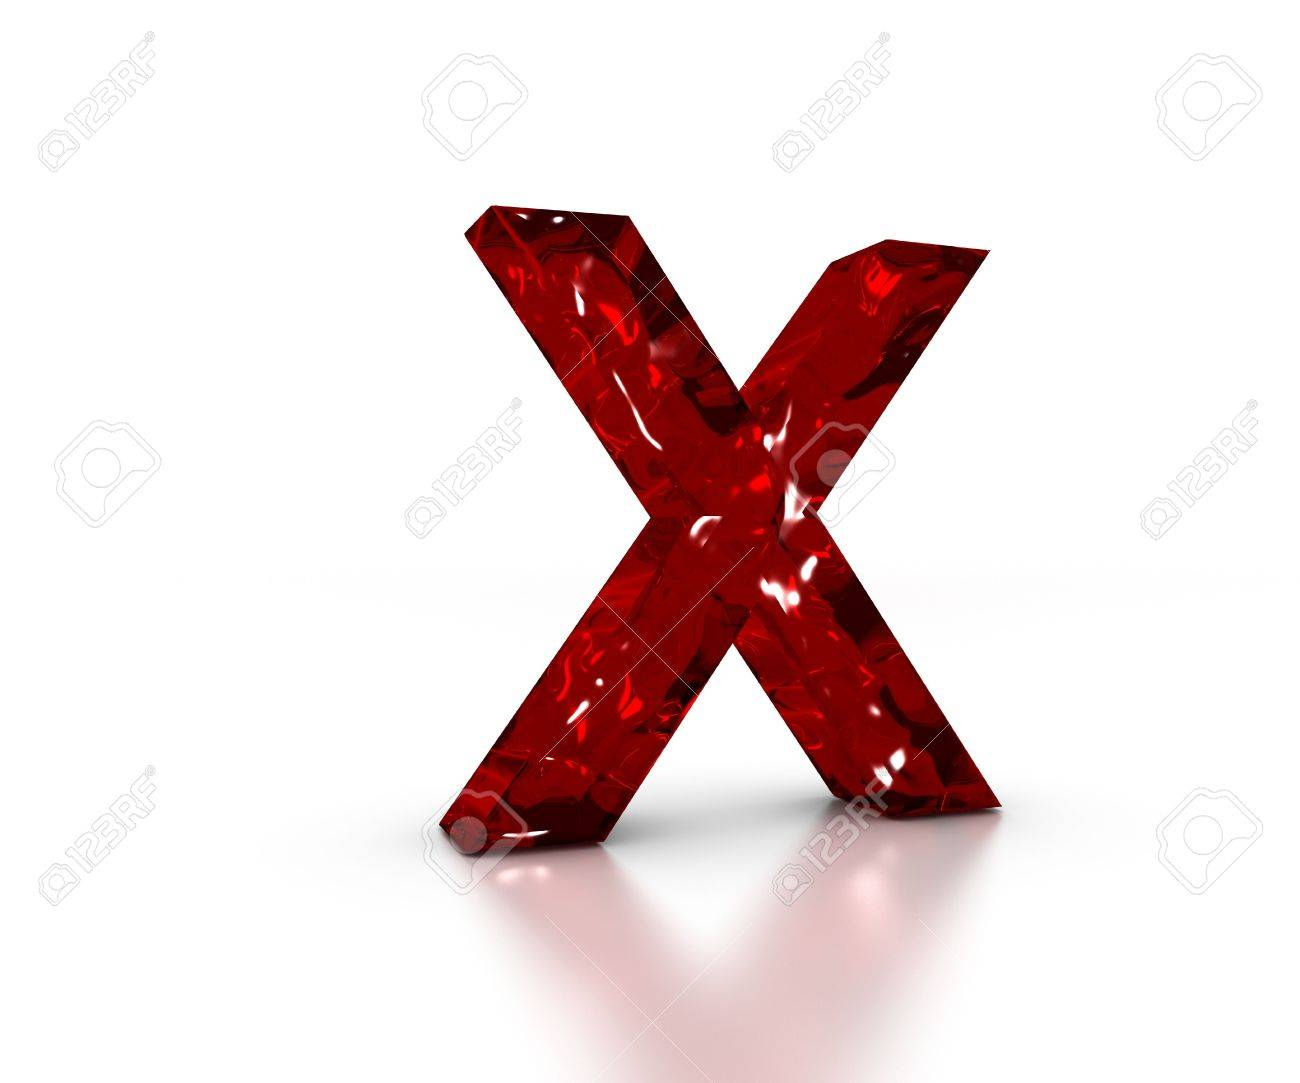 Red 3D glass Letter X in perspective on white background Stock Photo - 4992584